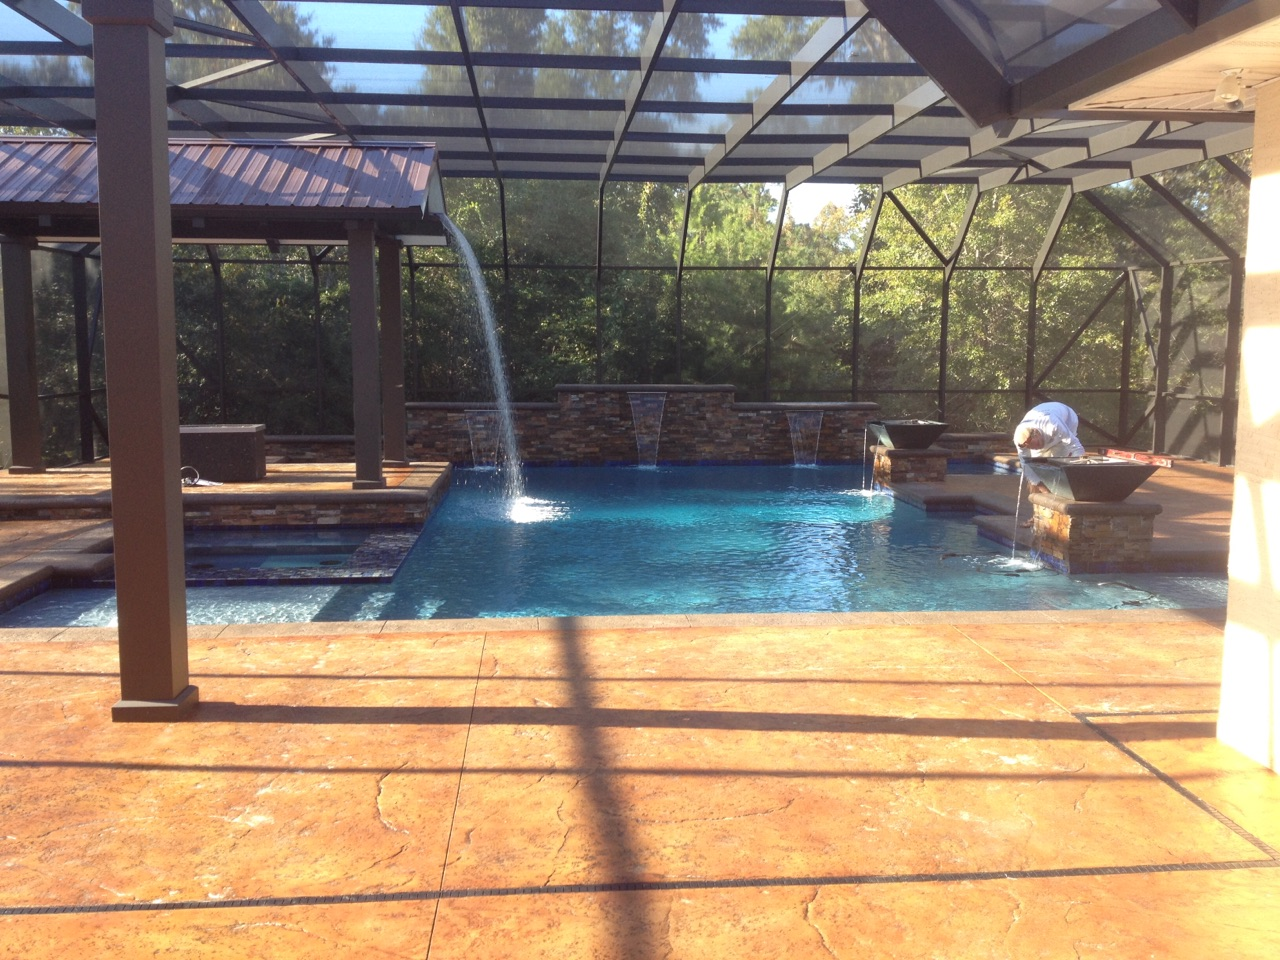 Gunite pool with fire and waterfall